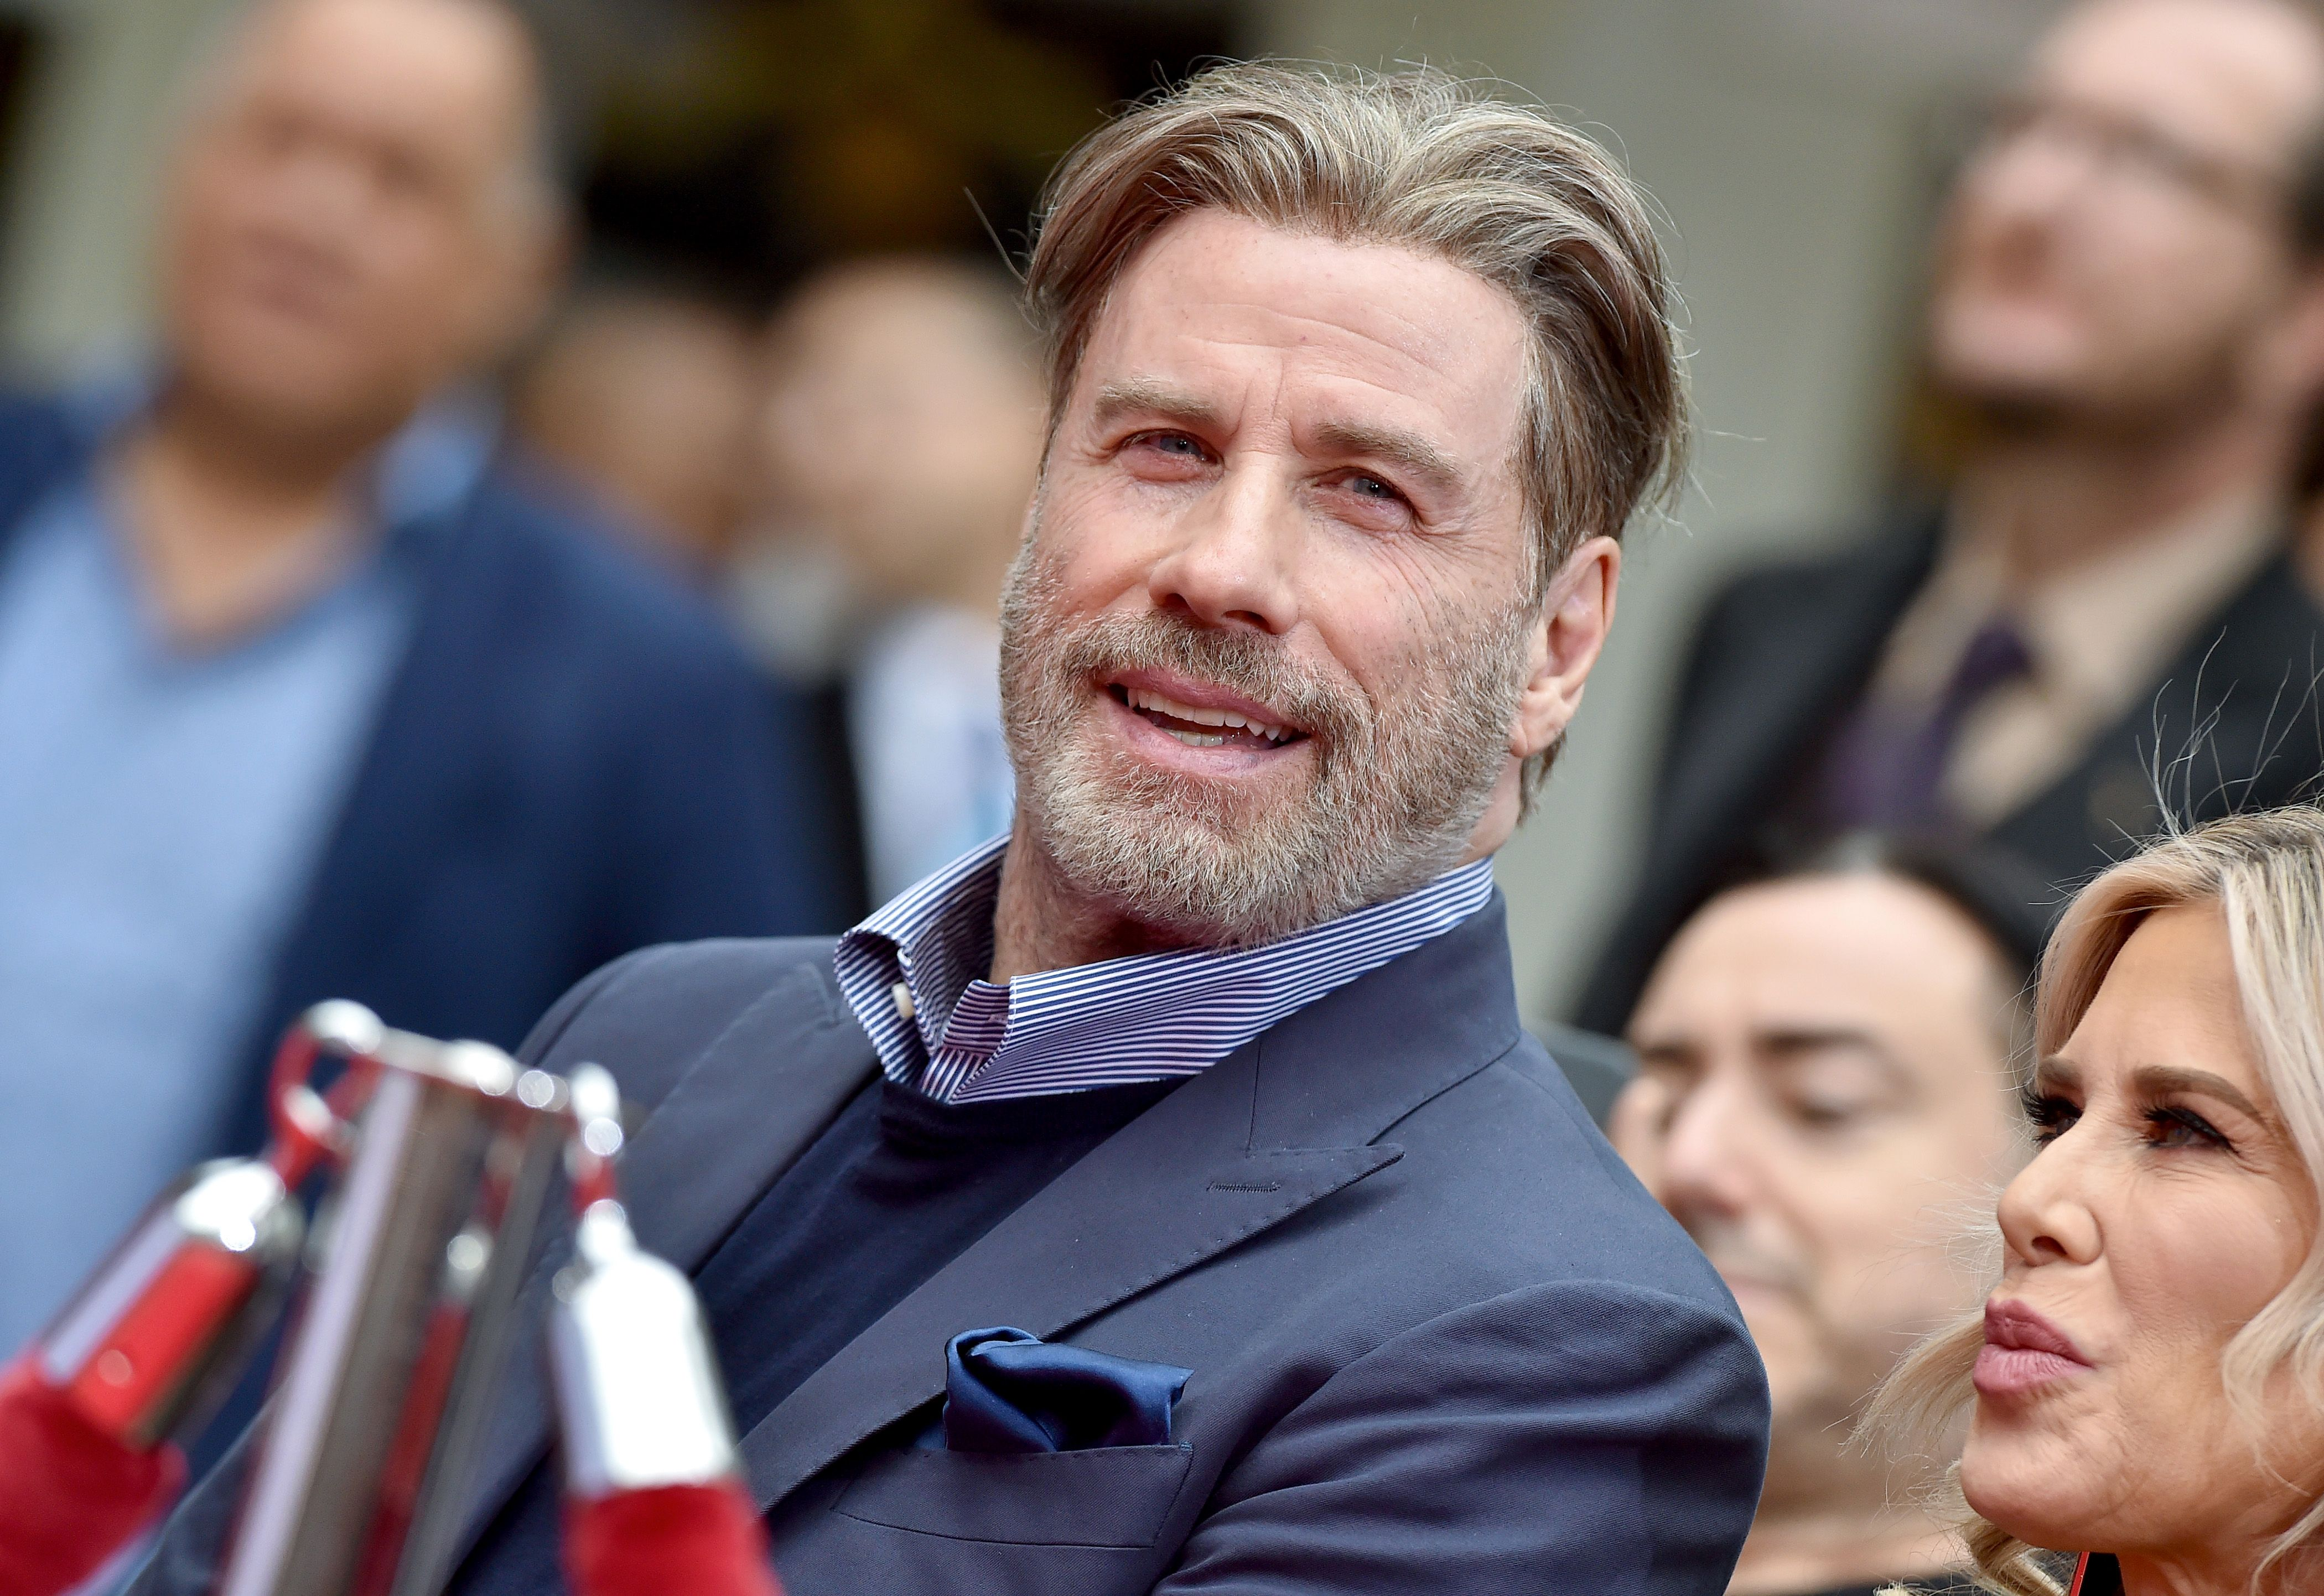 John Travolta's New Look Is Baldly Going Where He's Never Gone Before